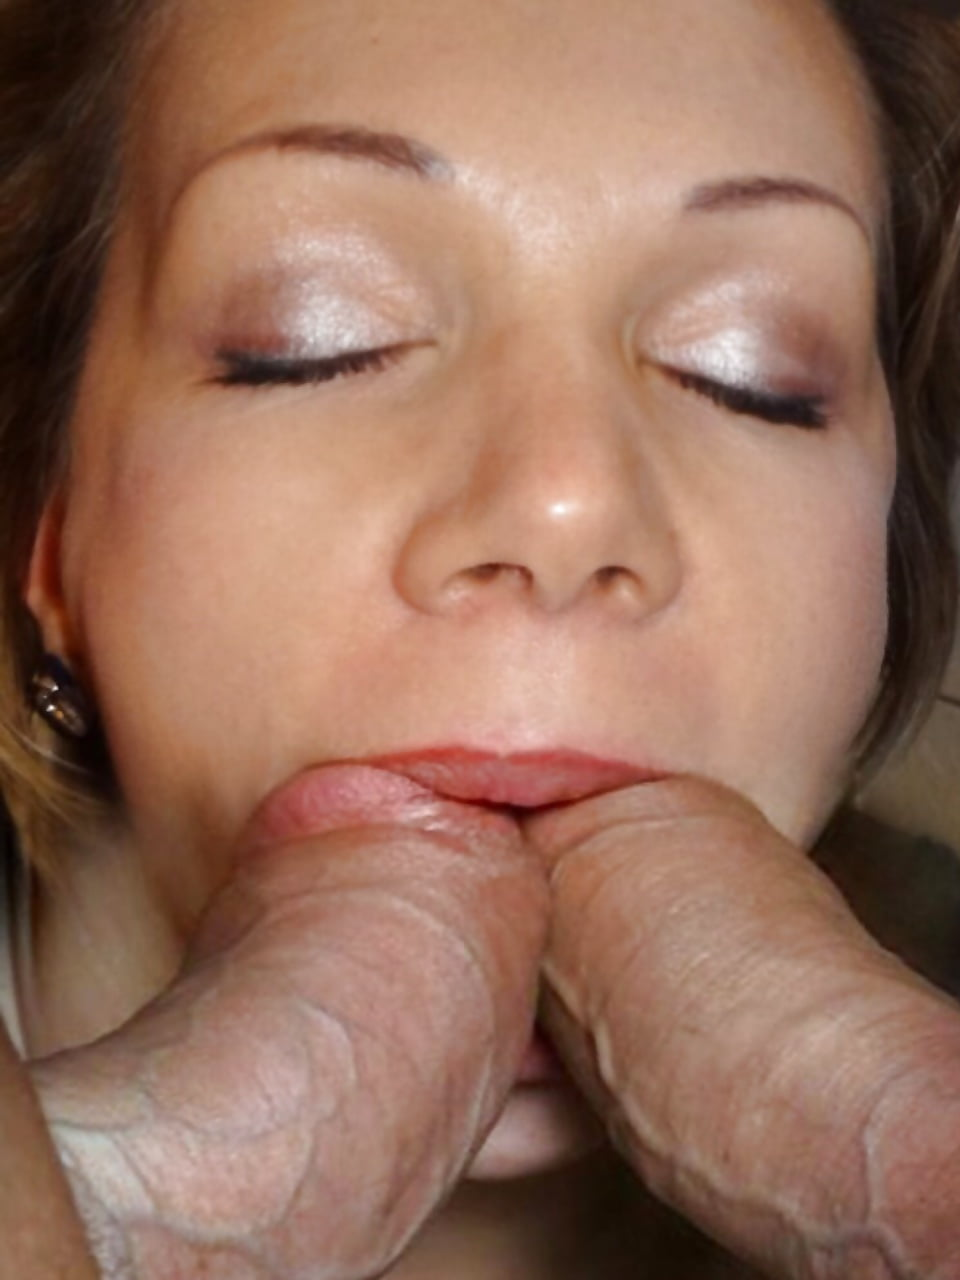 Amateur Busty Blowjob Wife